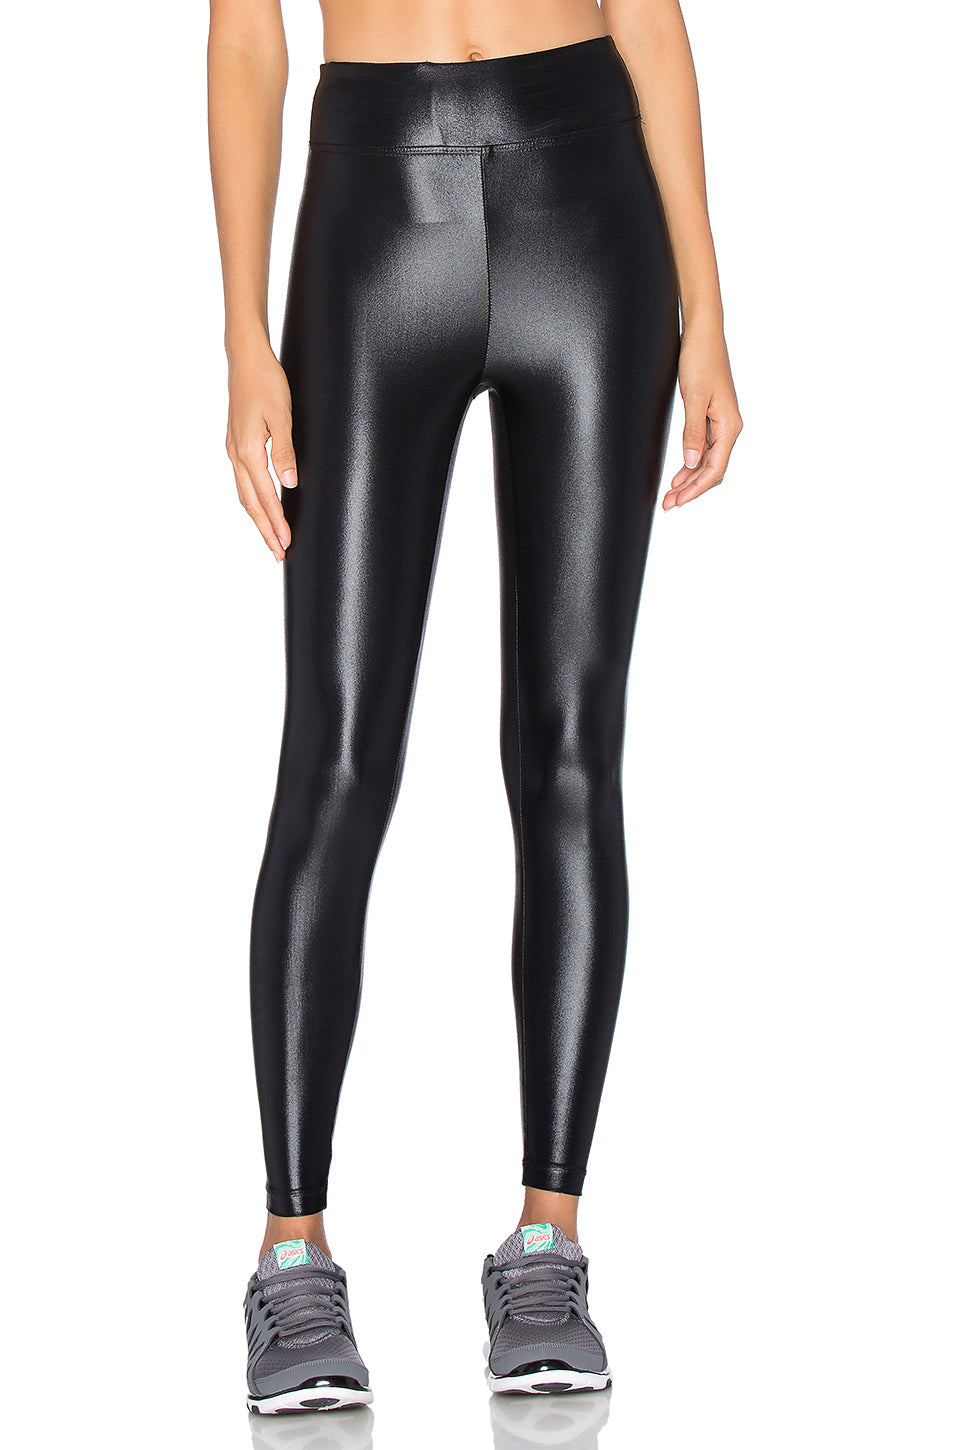 1b1dea0dd0d69 Koral High Waist Lustrous Legging Black – Bliss Bandits